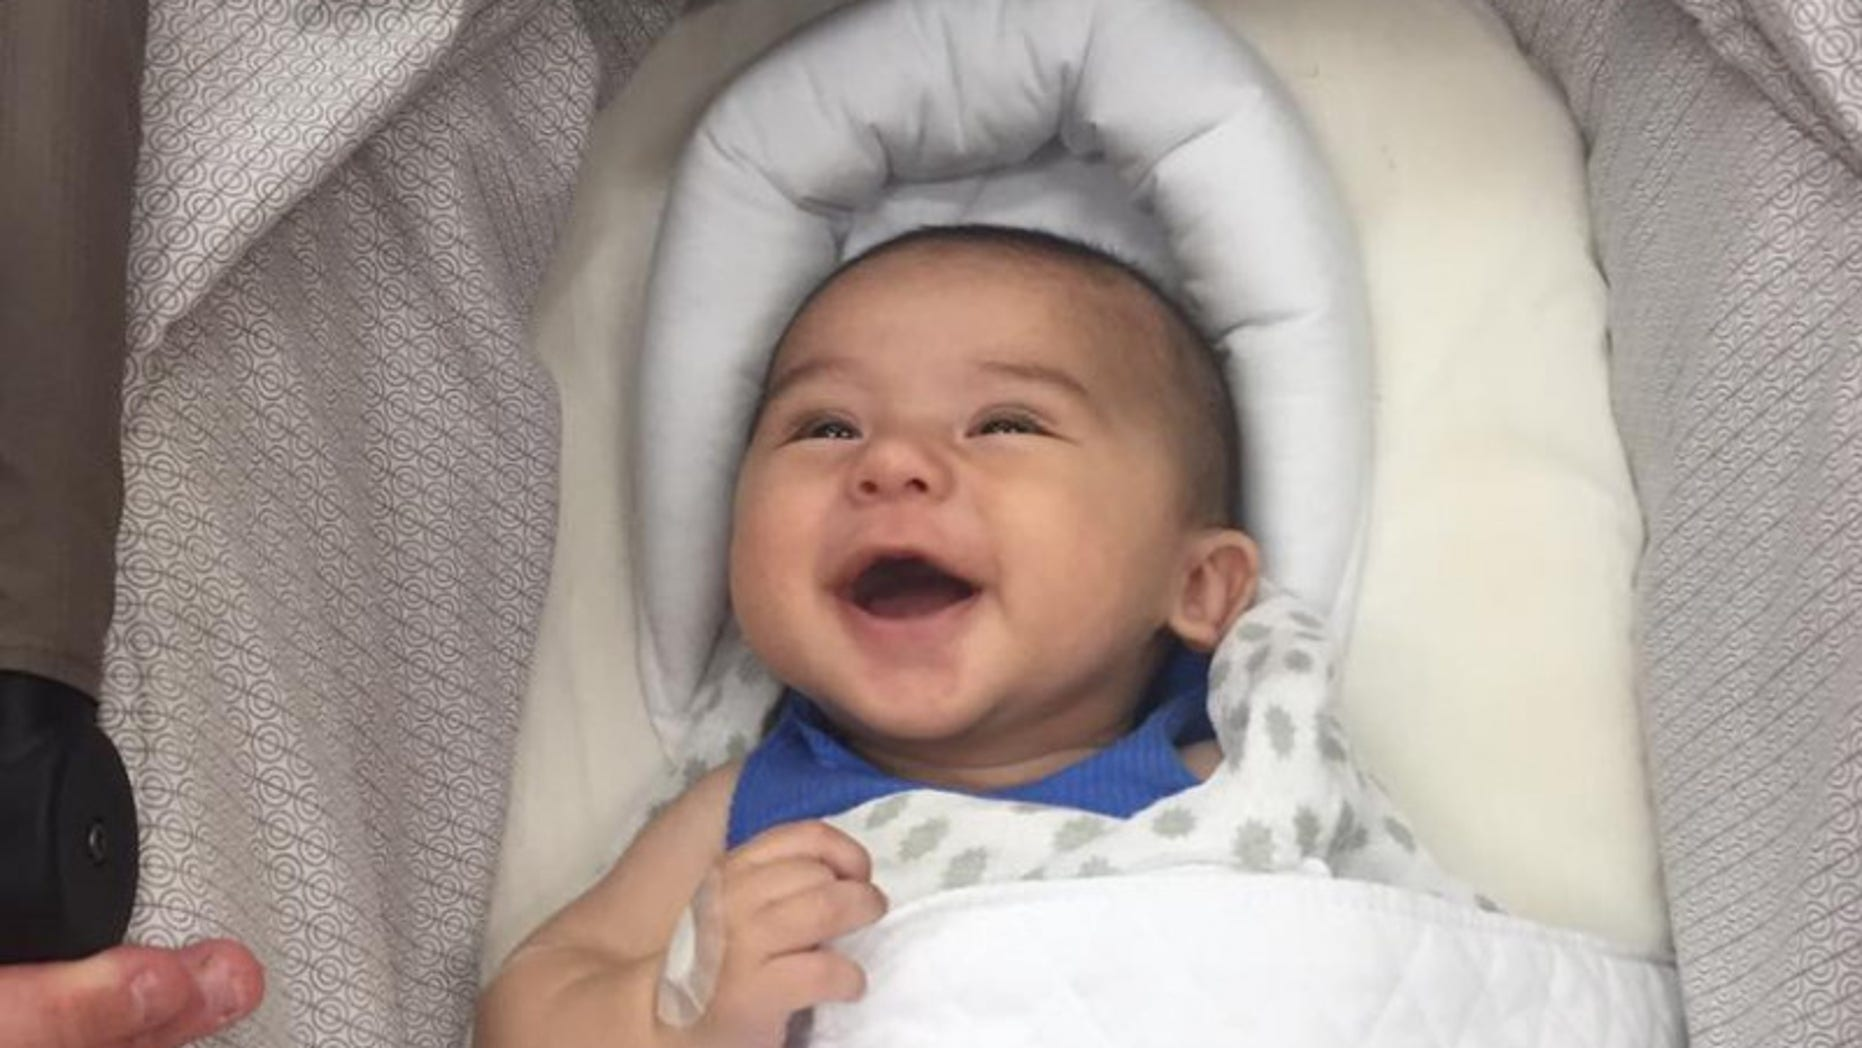 Thomas was diagnosed with terminal cancer at 11 weeks old.